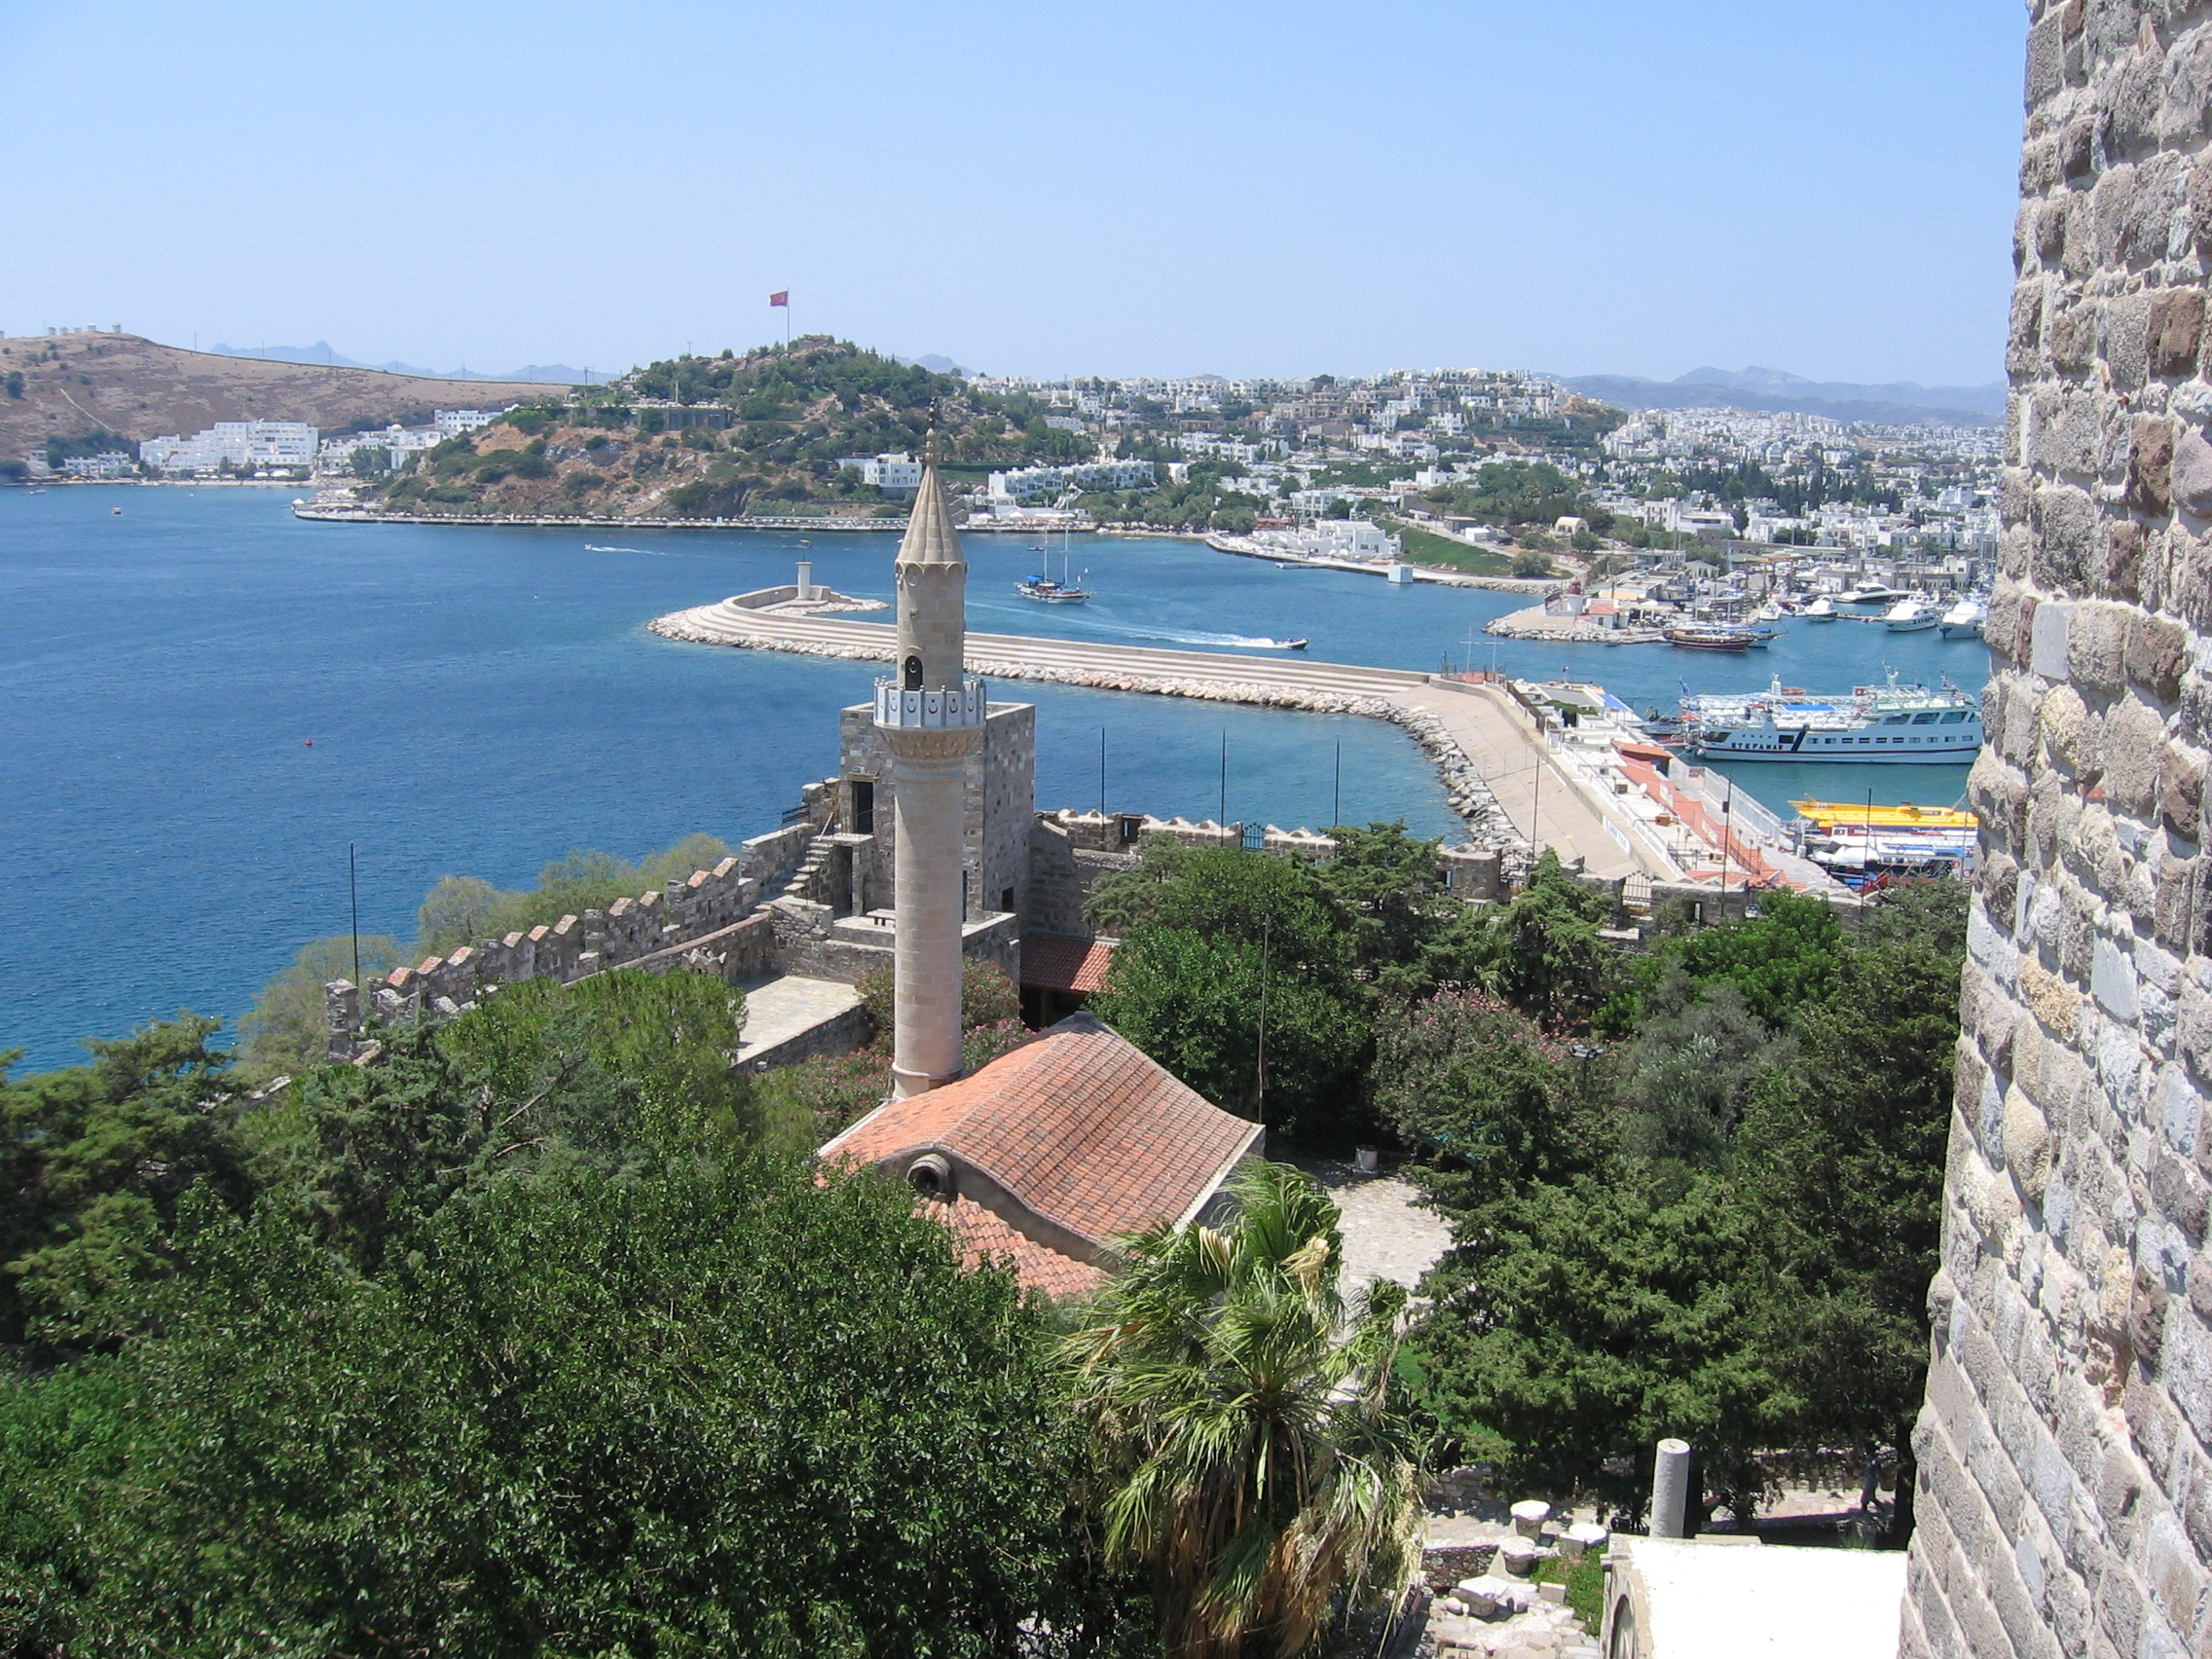 Bodrum - Simple English Wikipedia, the free encyclopedia